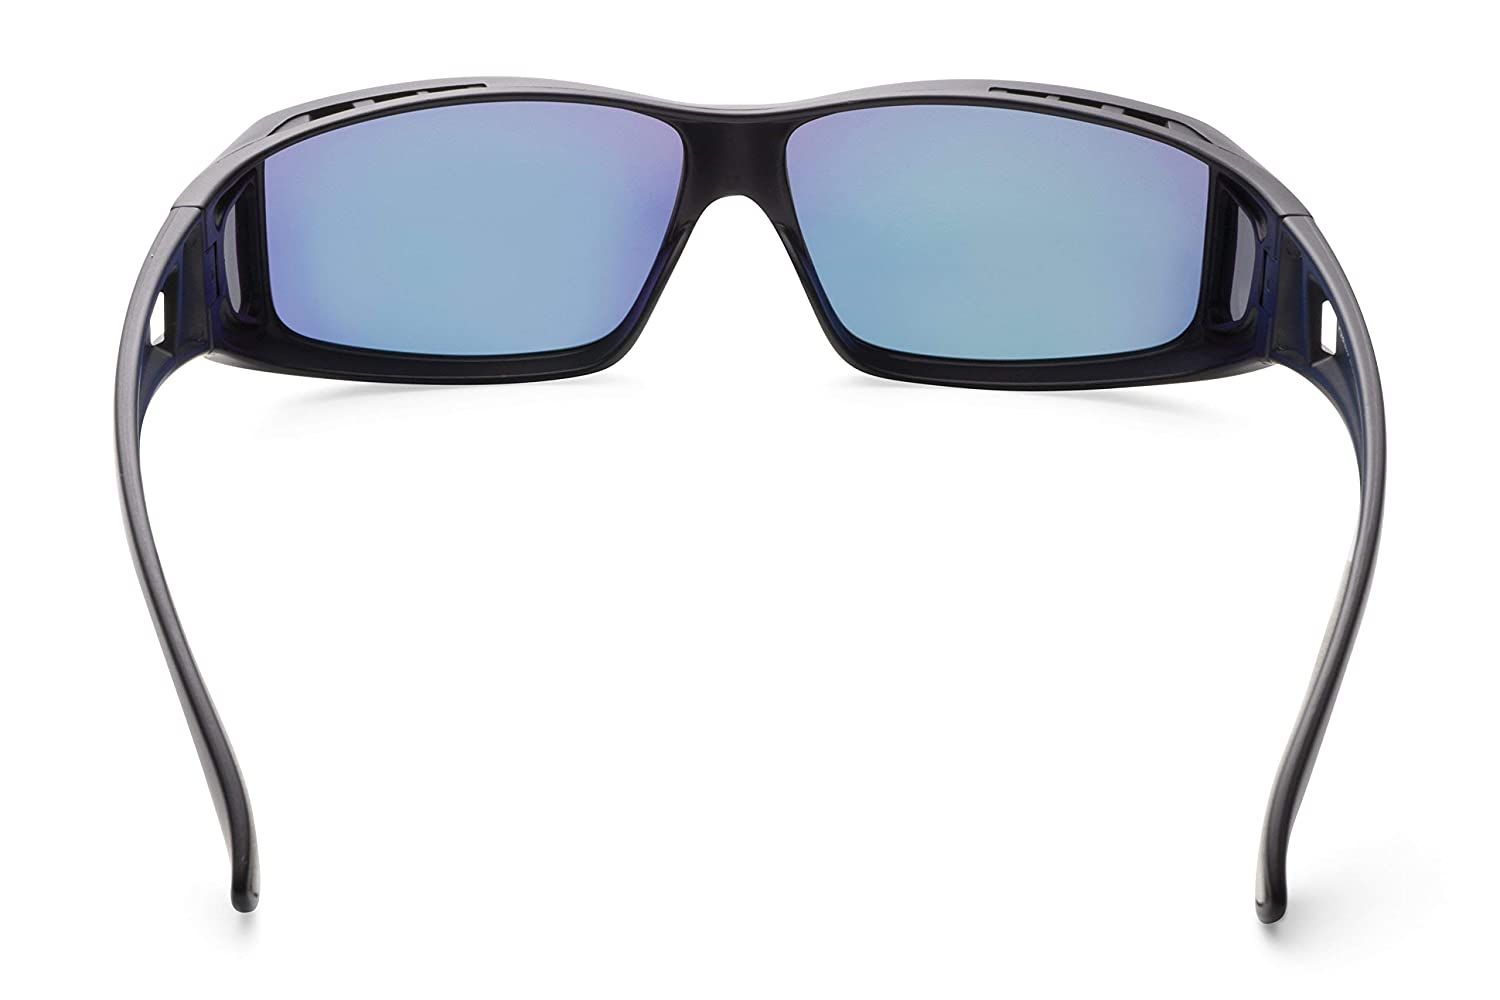 b5ce674e09 Amazon.com  Mr.O Fitover Polarized Sunglasses with Luxury Microfiber Pouch  - Made in Taiwan  Clothing